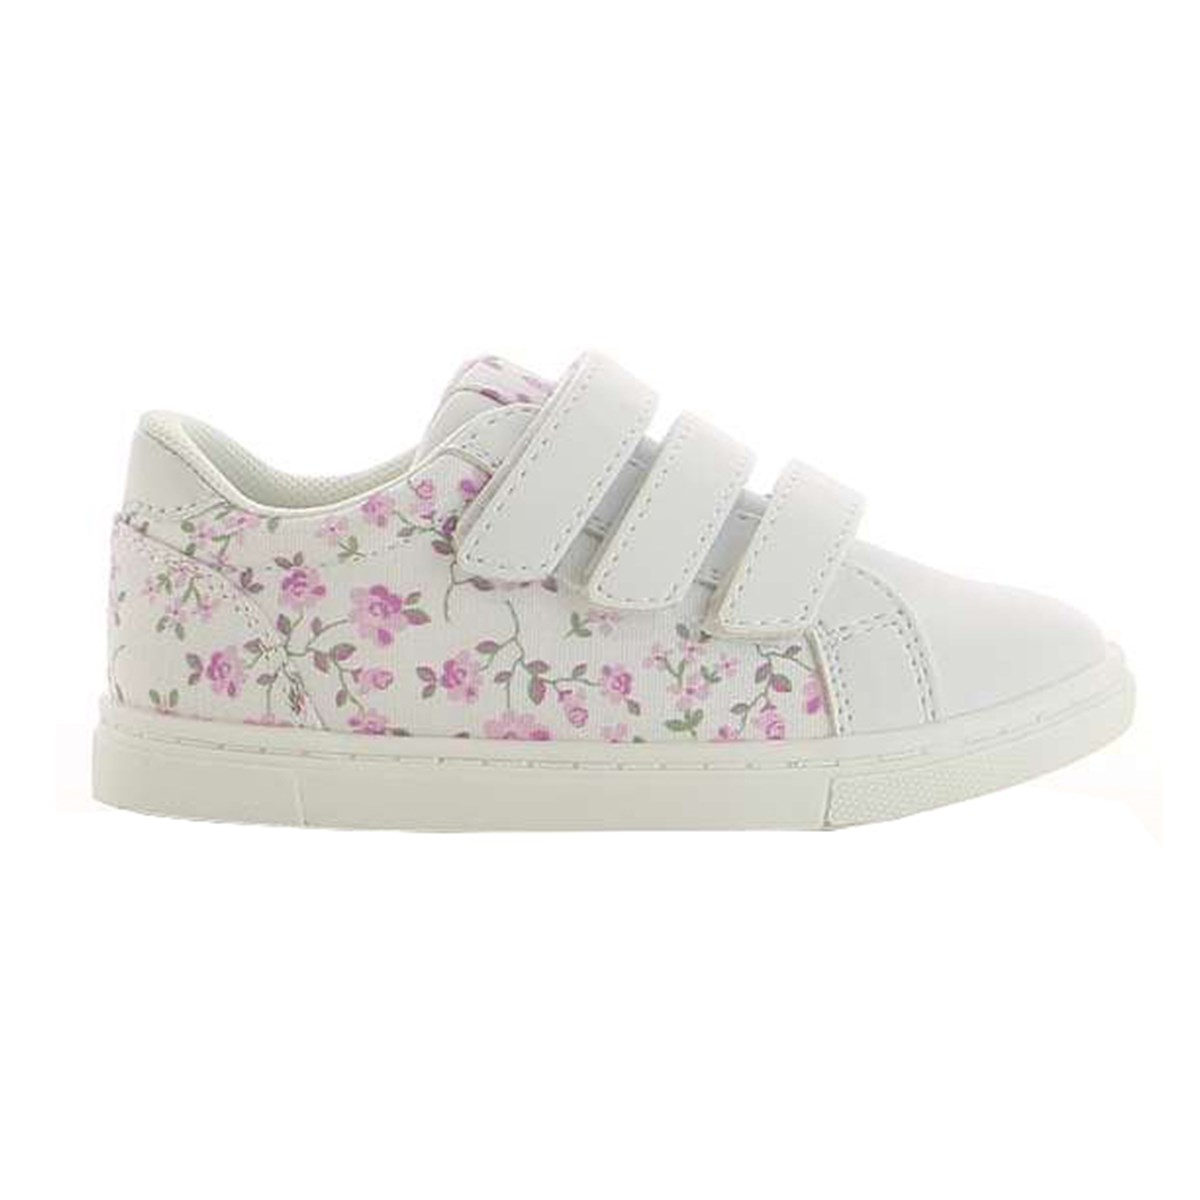 Kuling White Floral Sneakers